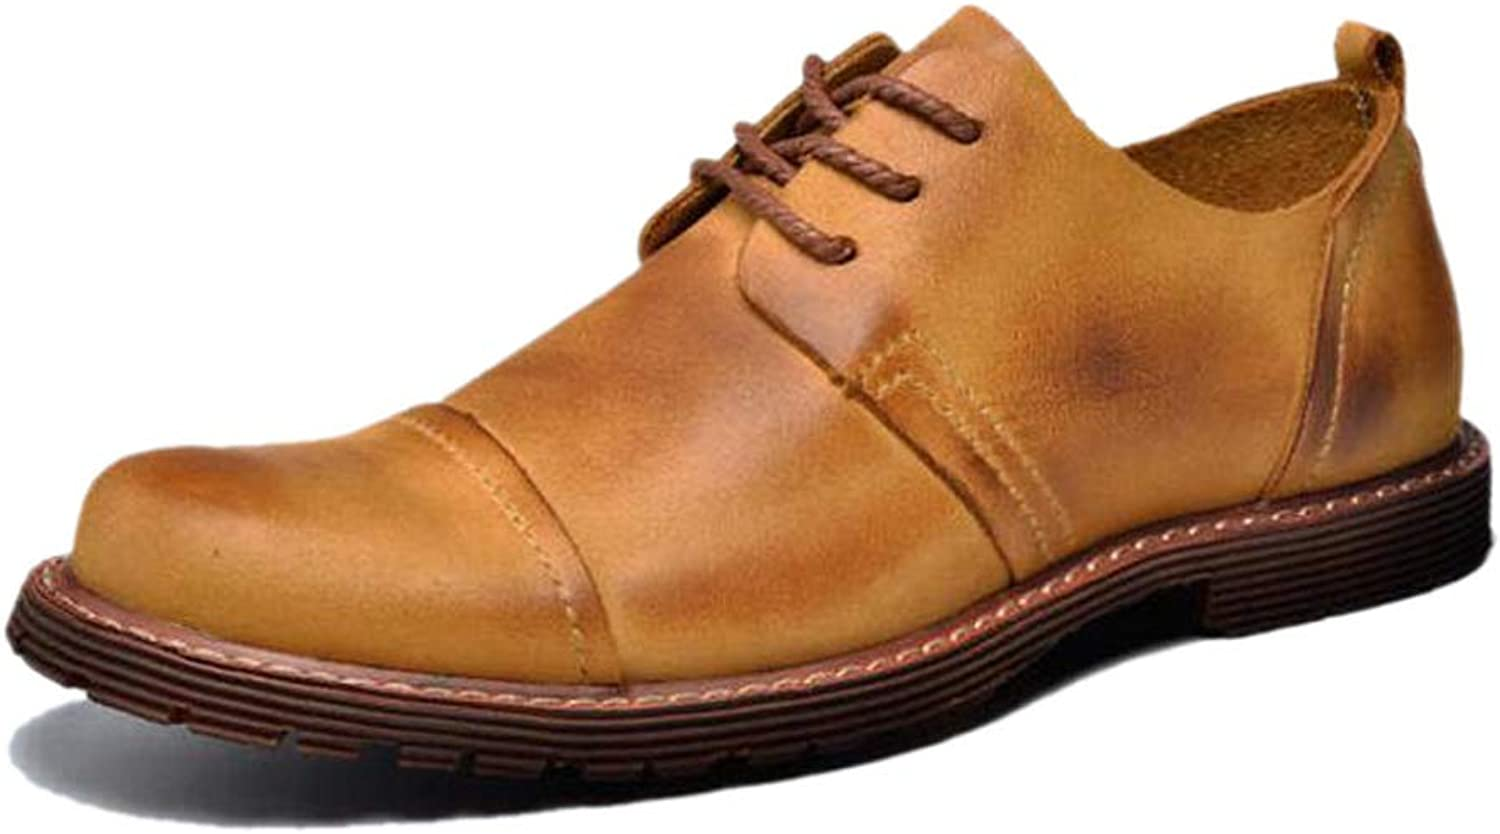 Casual Men's Derby Outdoor shoes, Brown, Yellow, Wearable, Breathable, Simple, Everyday, Hiking, Adult